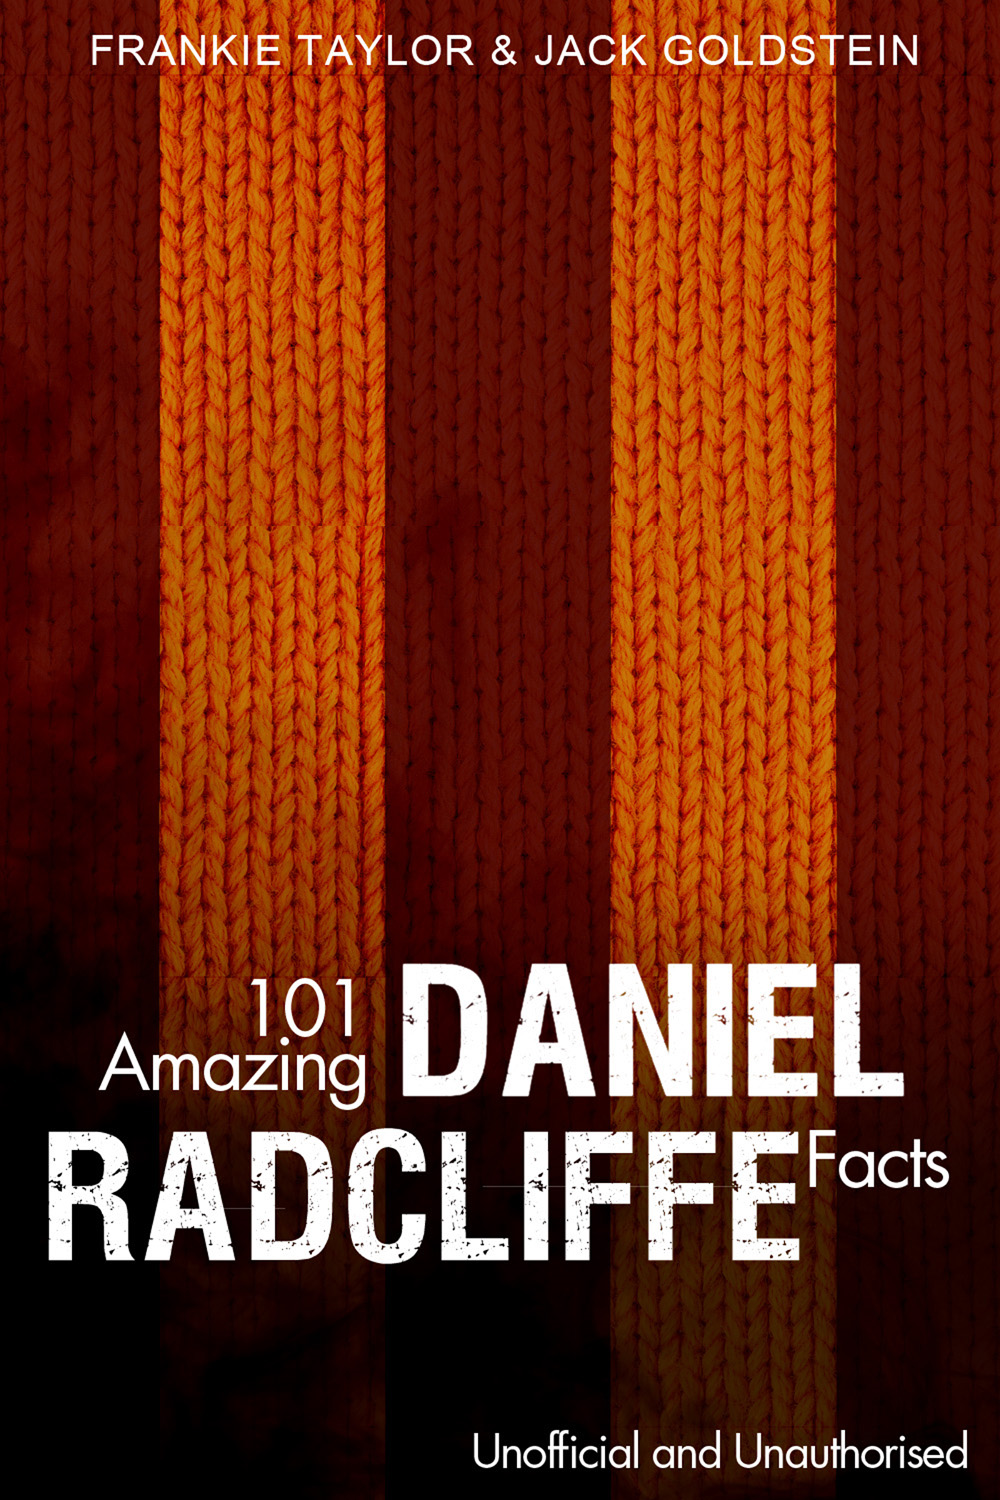 101 Amazing Daniel Radcliffe Facts